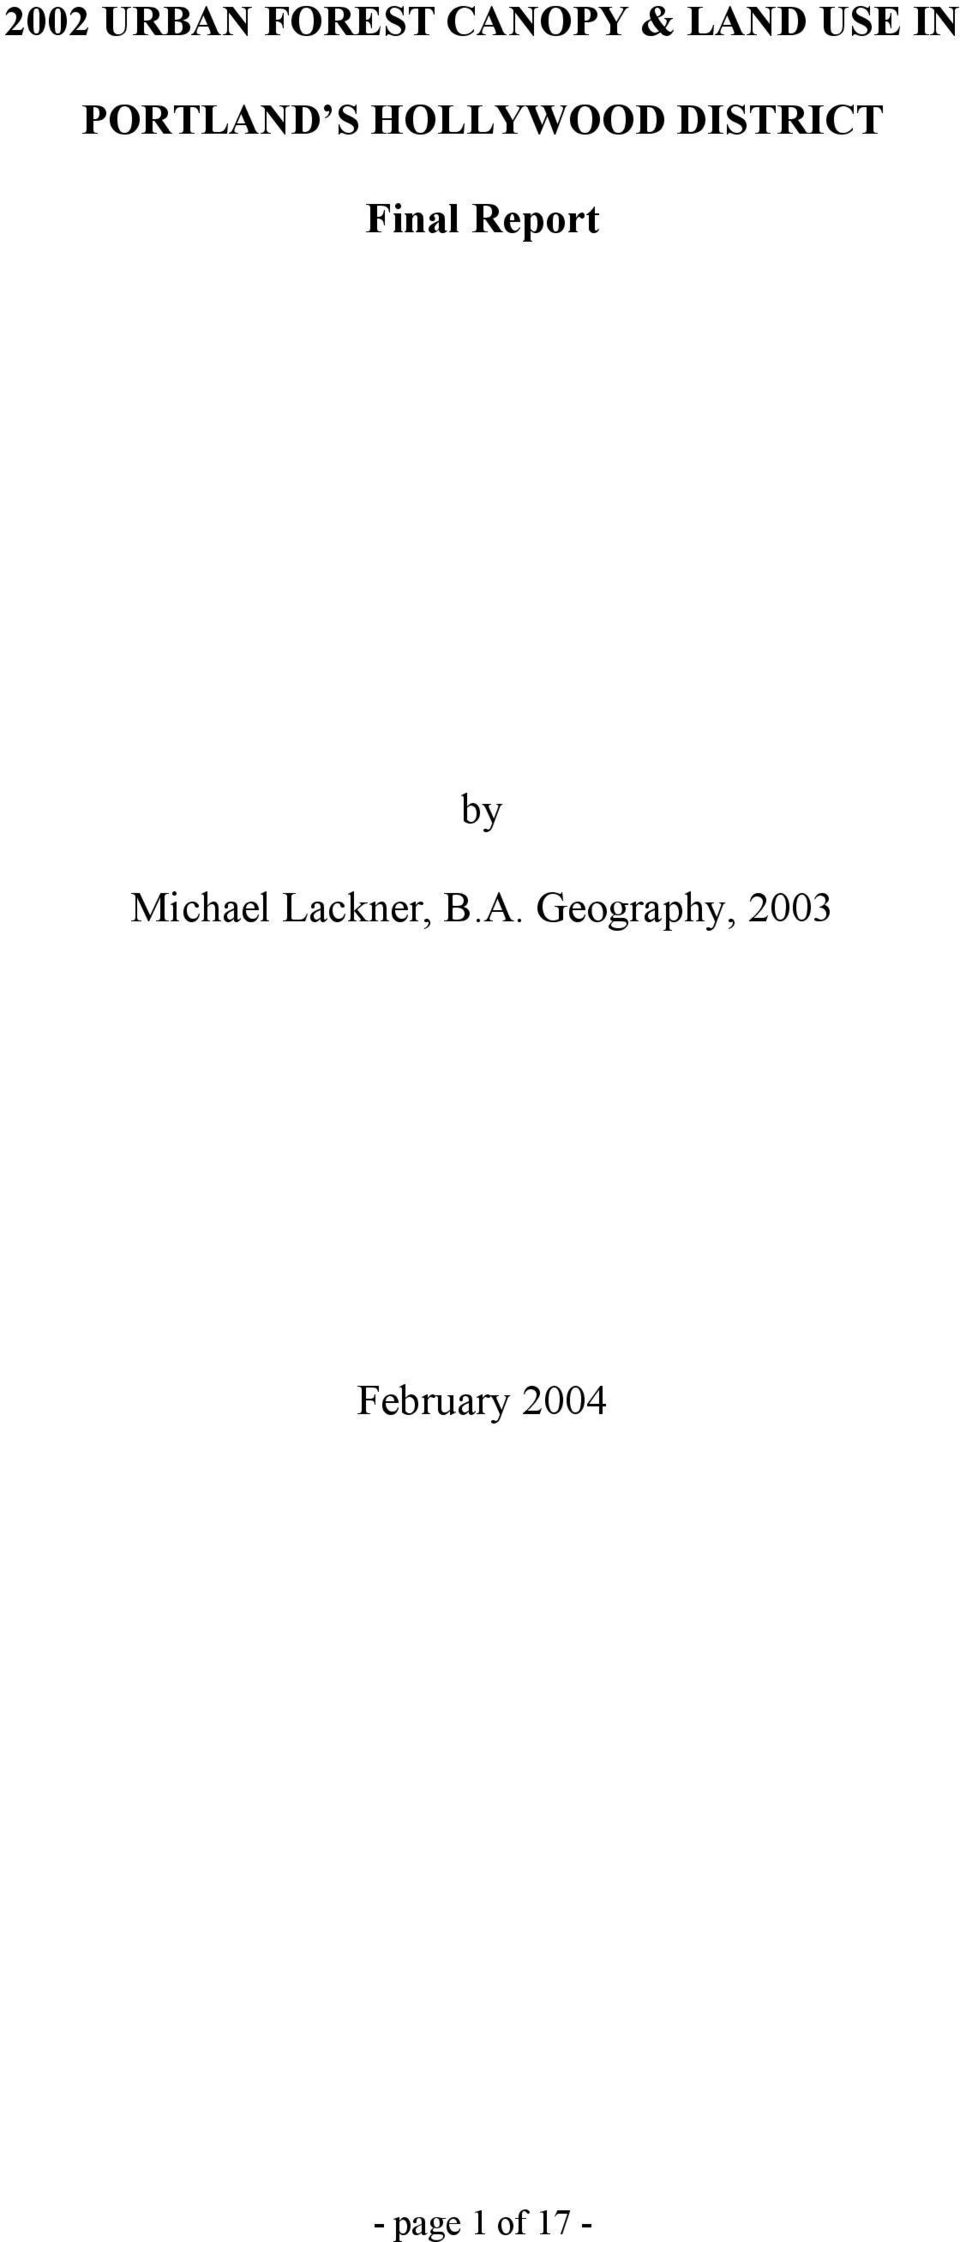 Report by Michael Lackner, B.A.